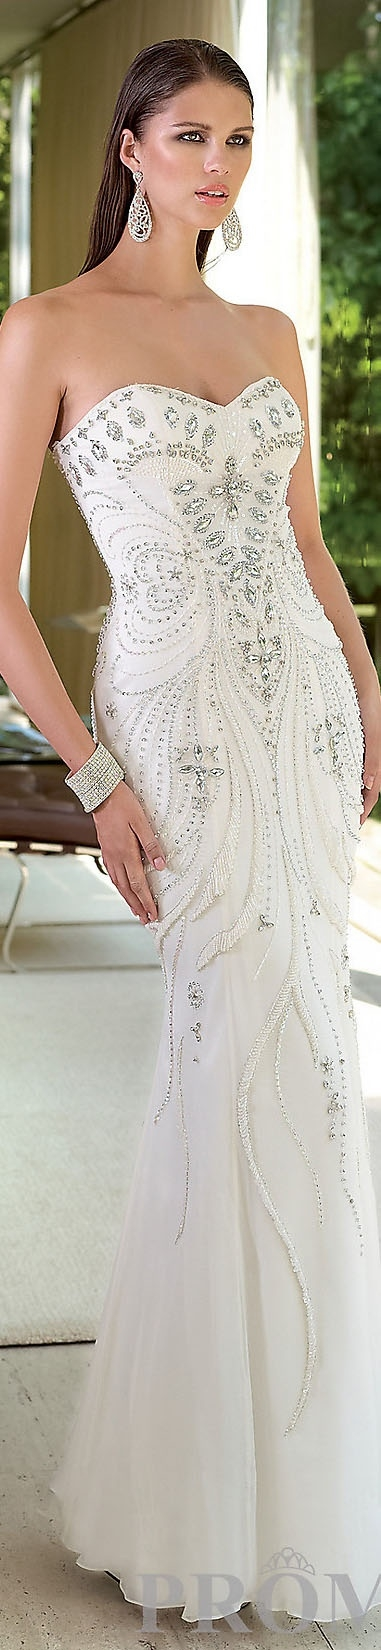 Beautiful beaded and sequined gown.